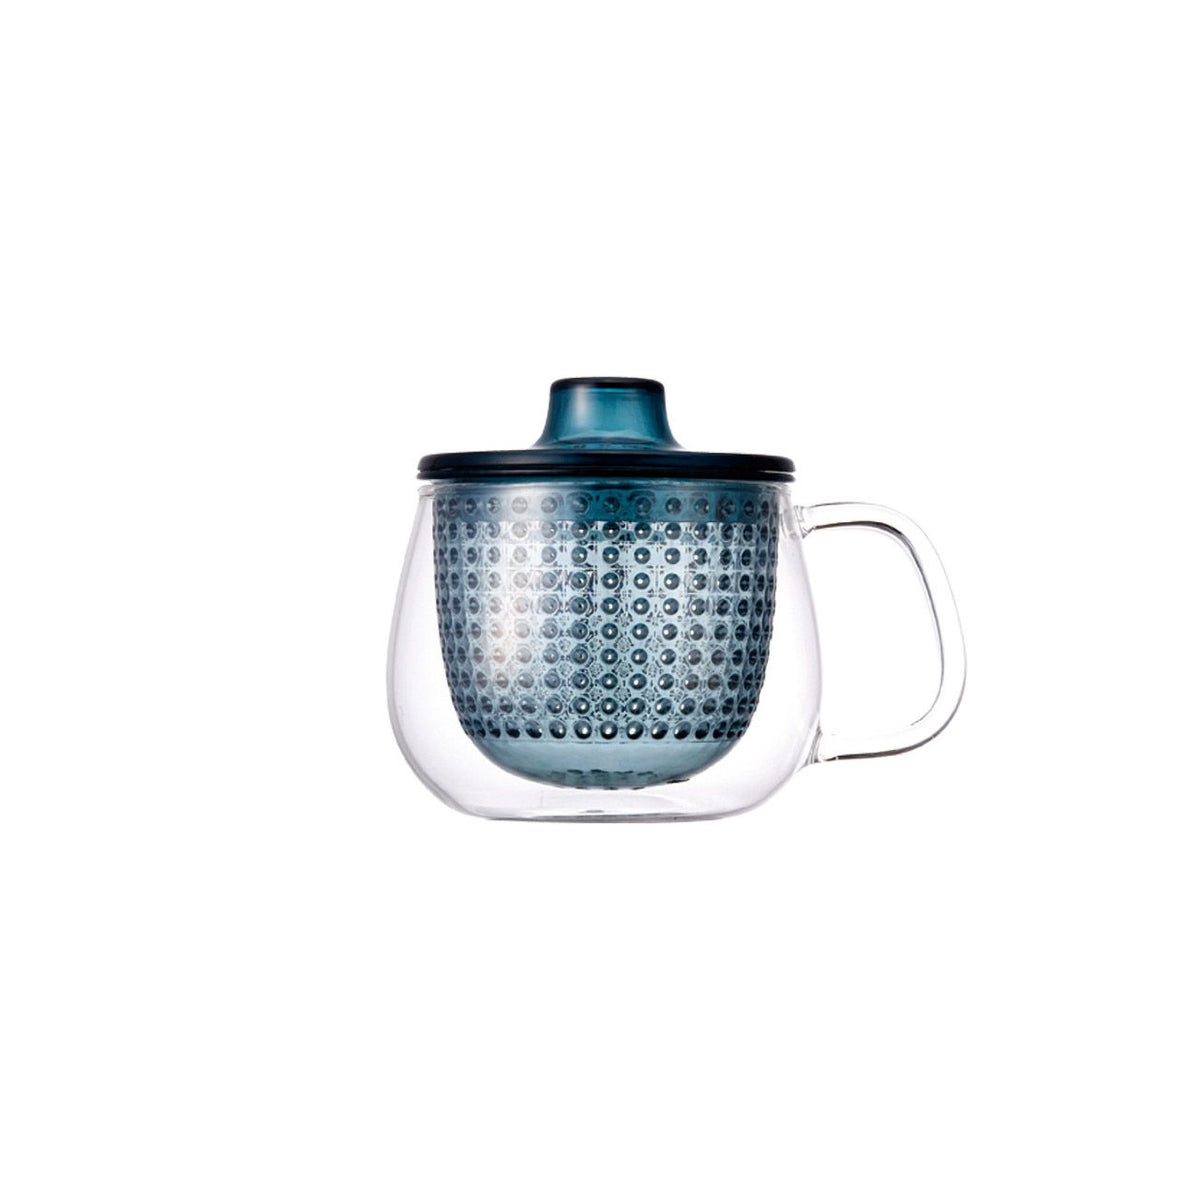 UNIMUG glass teapot in  blue for loose leaf tea by The Rabbit Hole